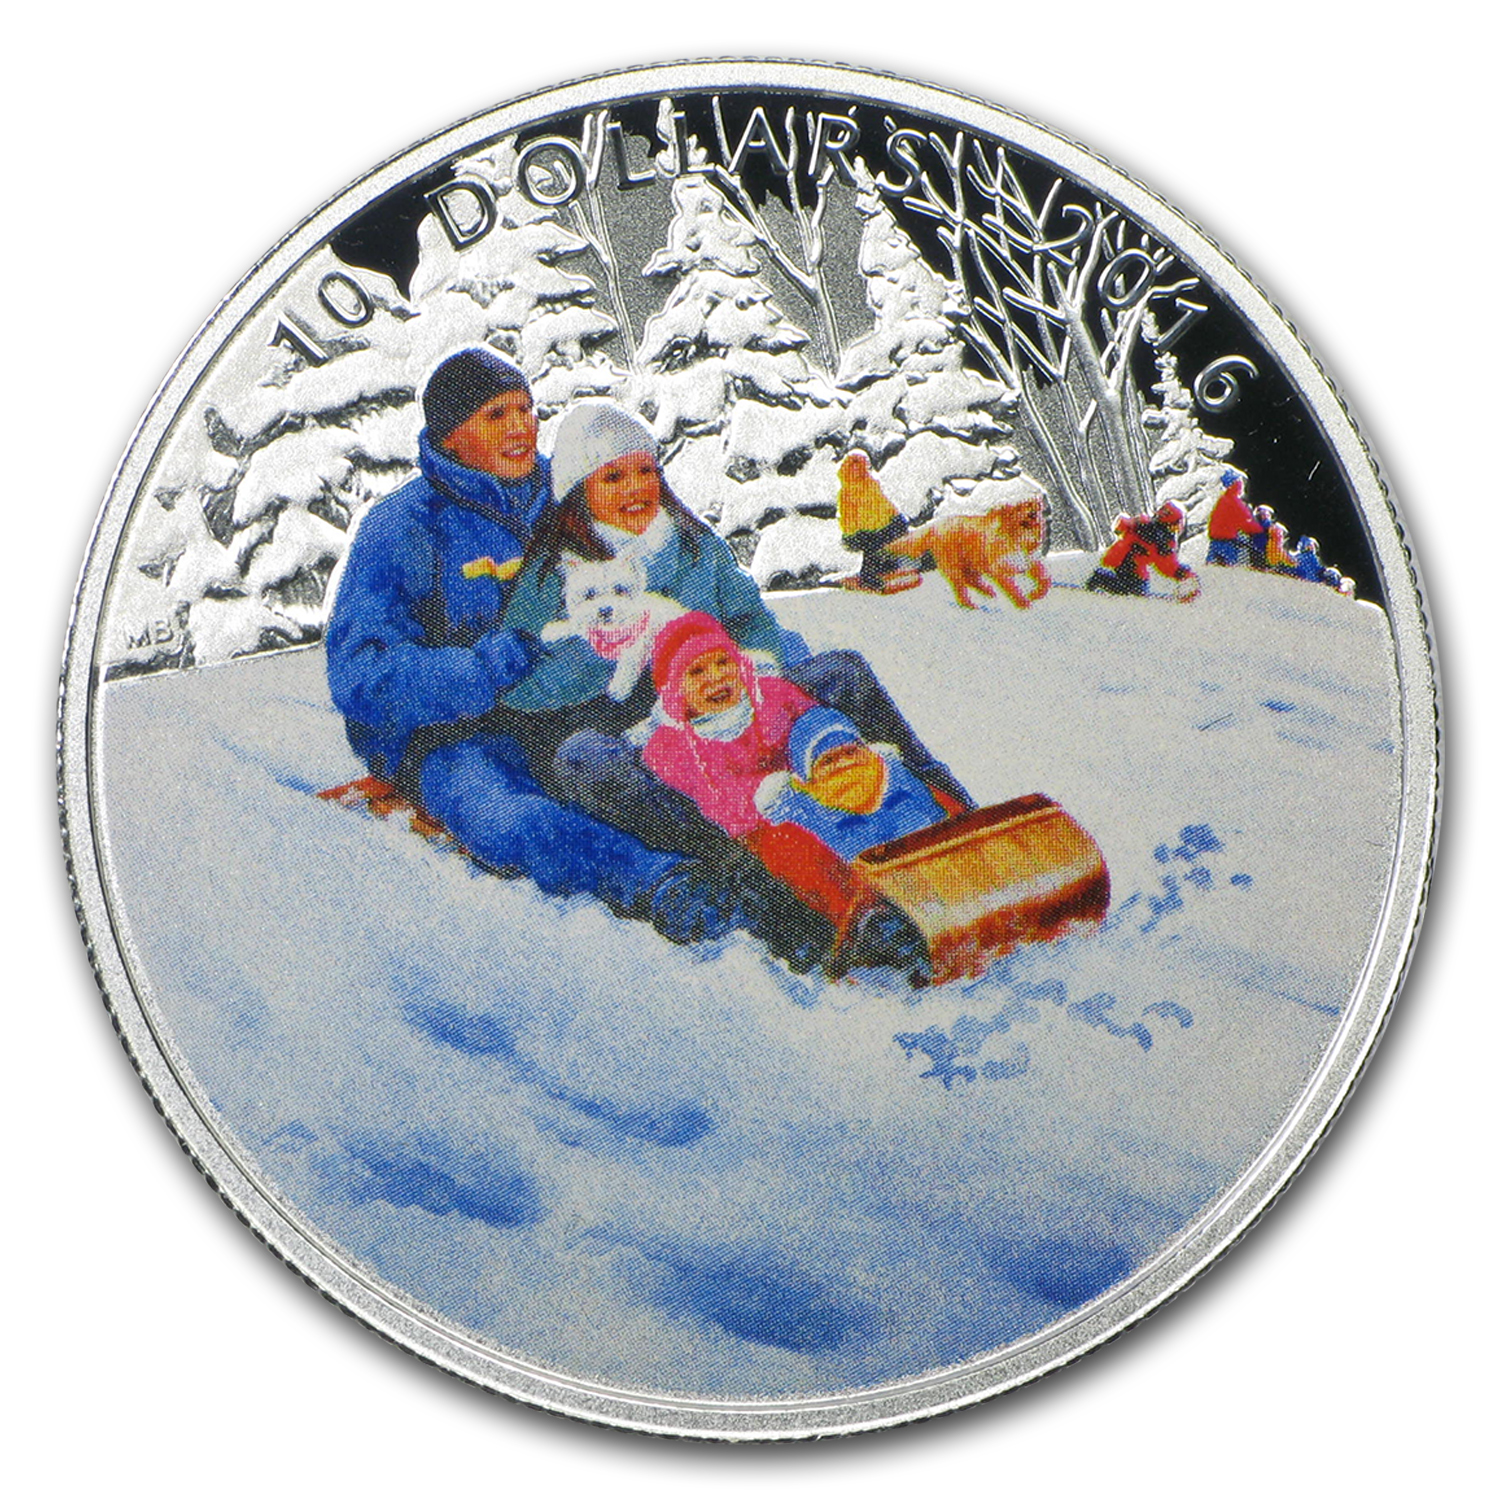 2016 Canada 1/2 oz Silver $10 Winter Fun Proof